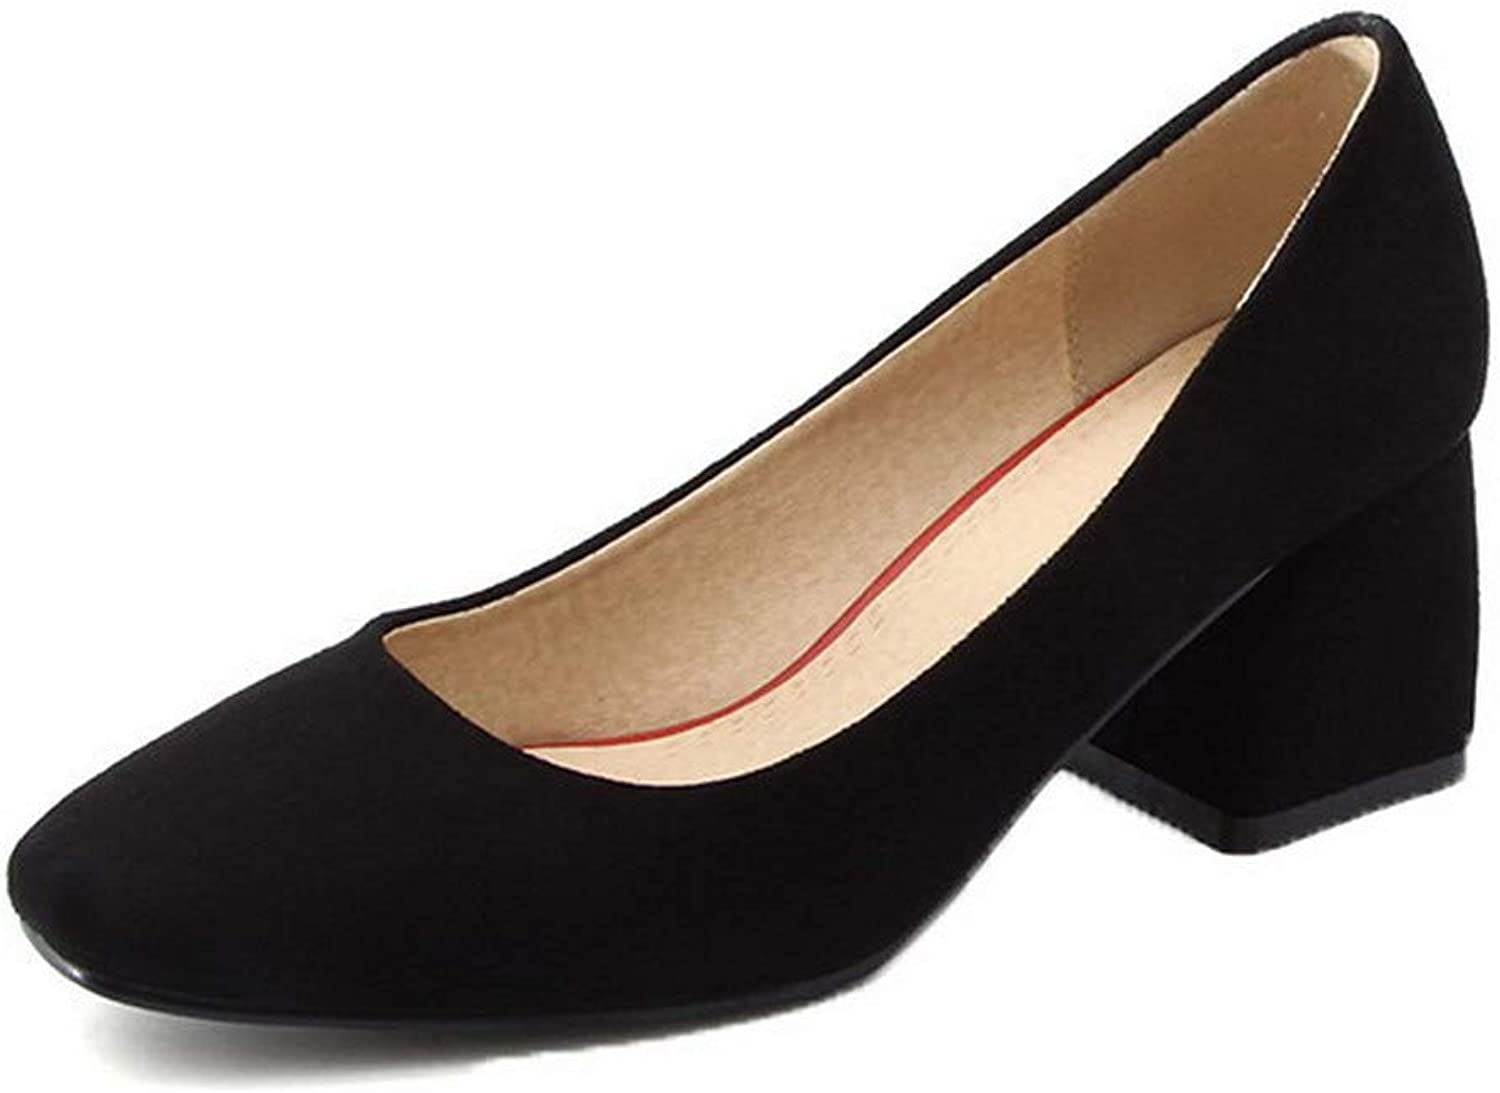 AllhqFashion Women's Solid Square Closed Toe Pull-On Pumps-shoes, FBUDD011530